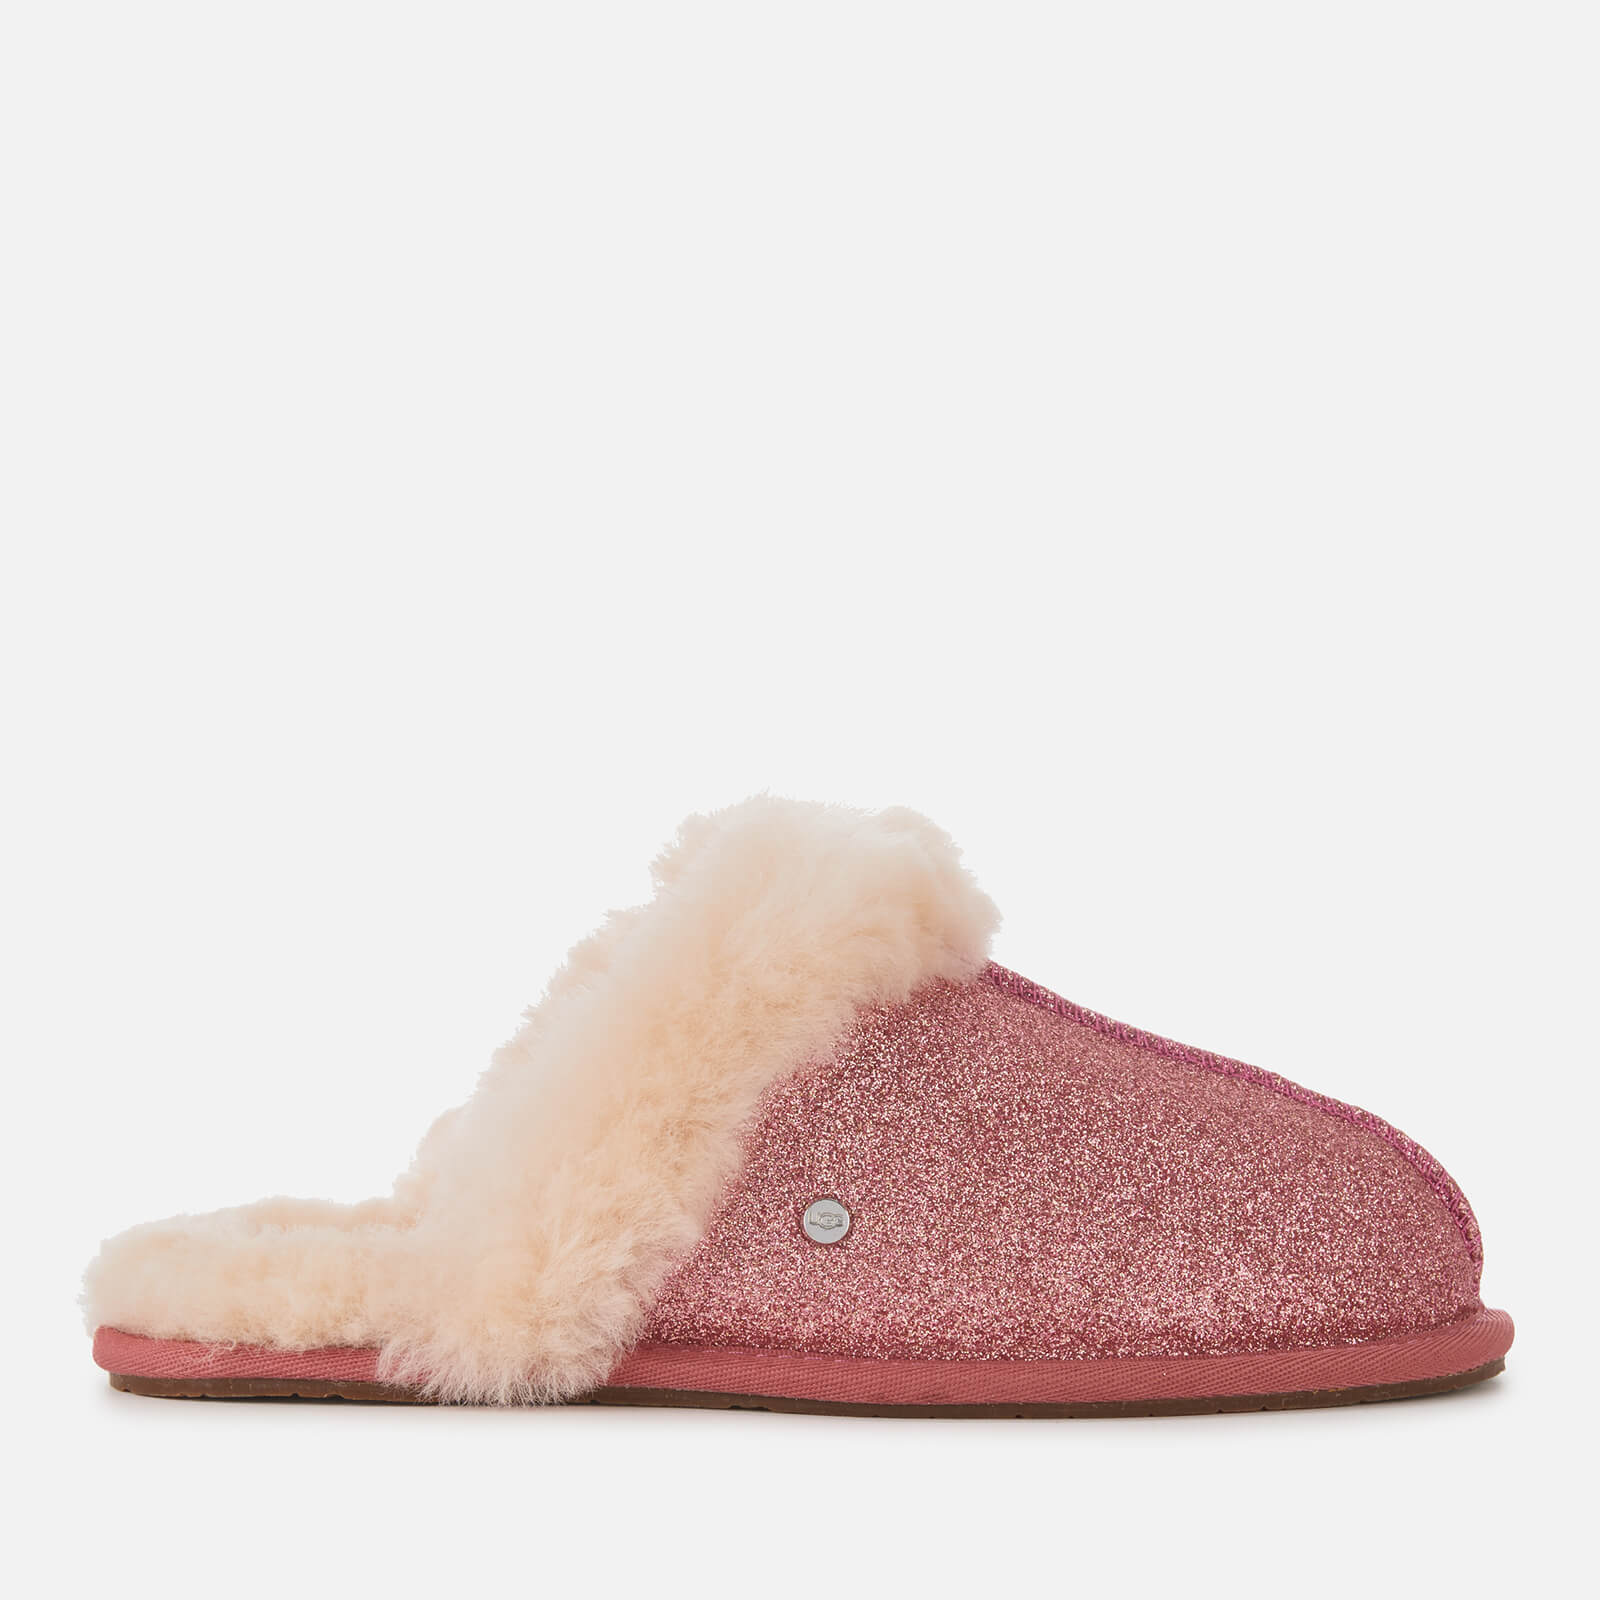 81d8913a5 UGG Women's Scuffette II Sparkle Slippers - Pink | FREE UK Delivery |  Allsole